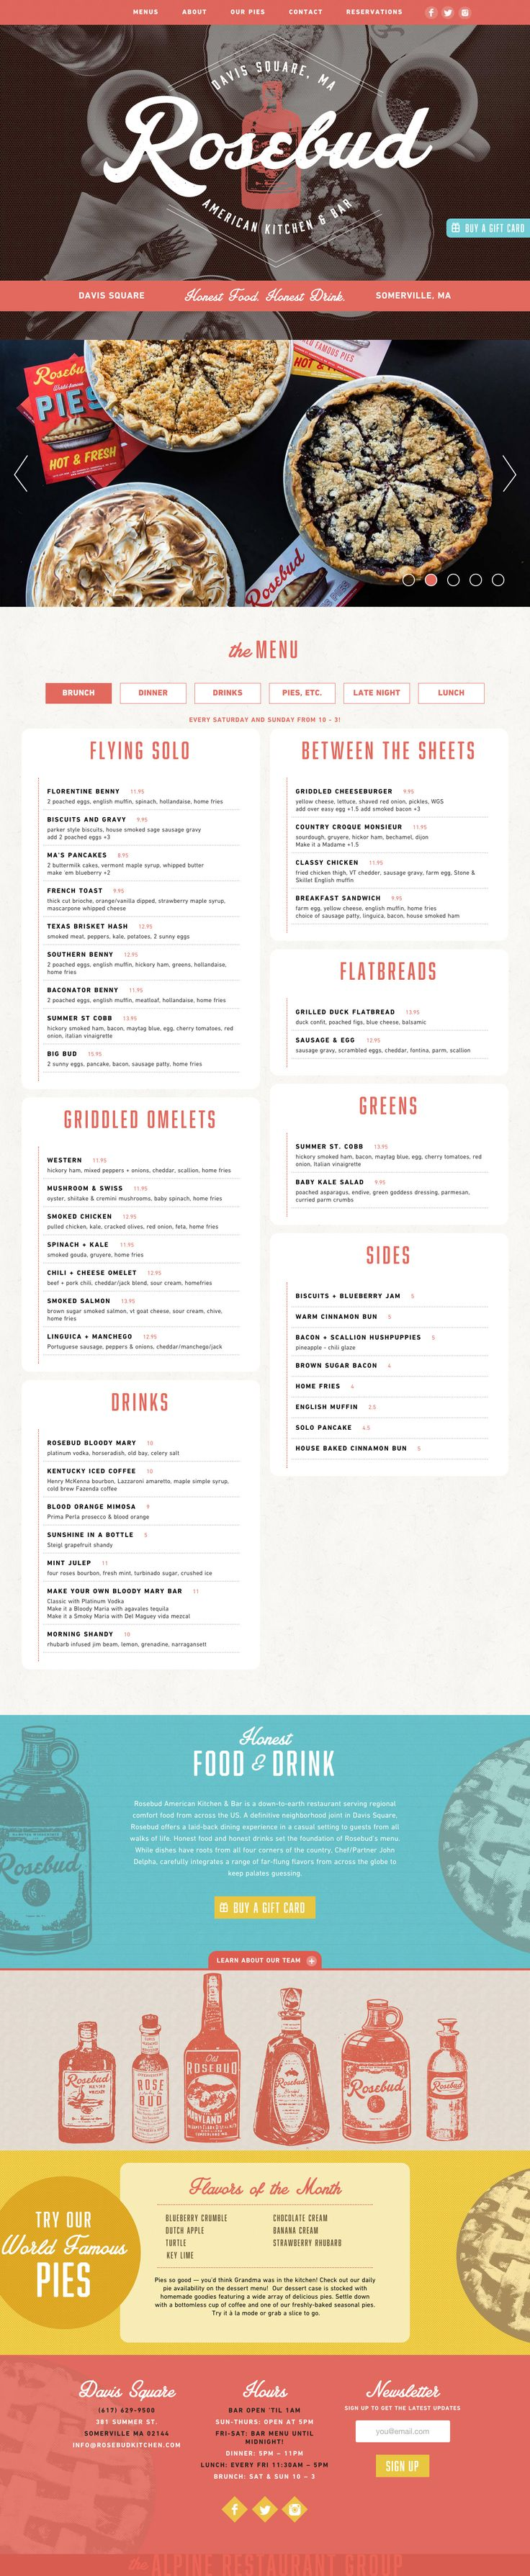 """Responsive One Pager for the 'Rosebud' American kitchen & bar based in Somerville, Massachusetts. The second """"rose red"""" color bar feels strange as the header/nav bar is same color but overall a good blend of big images, textures and vintage illustrations. Quite impressed with the food menu adaption on all resolutions down to mobile. Good to know it's built on WordPress:)"""